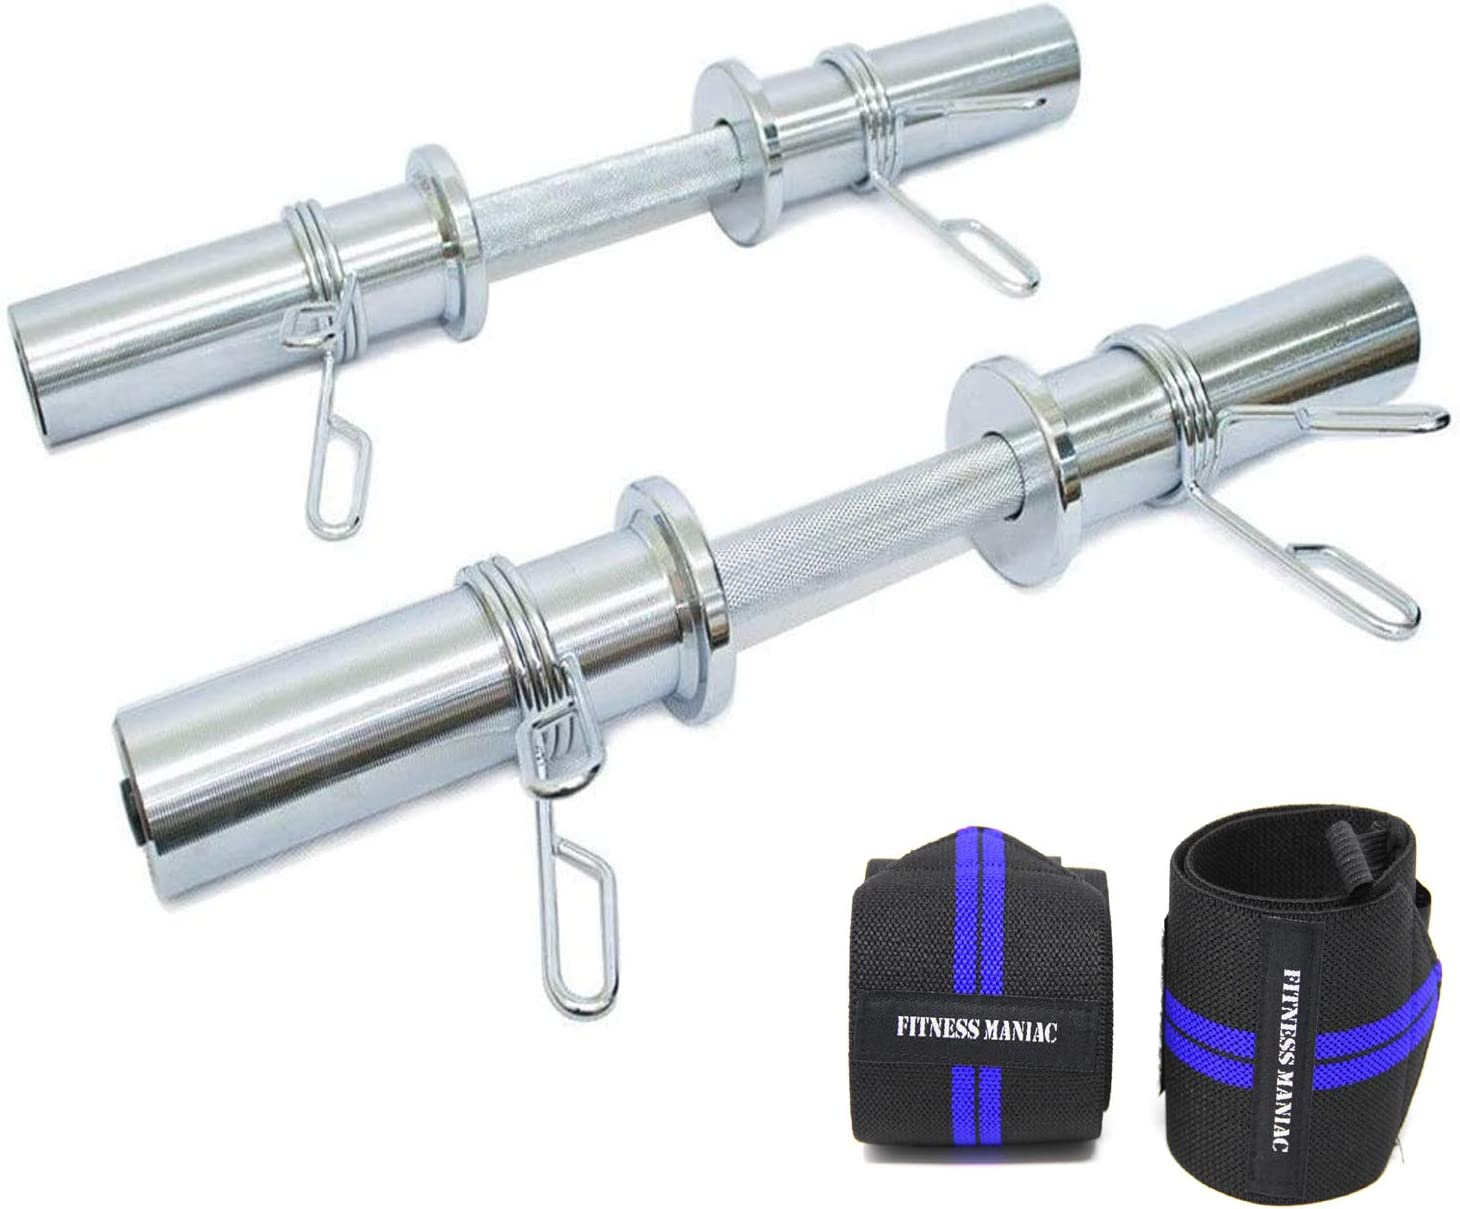 FITNESS MANIAC Heavy Duty Barbell 20 Inch Olympic Dumbbell Handle Pair Solid Steel Two Handle